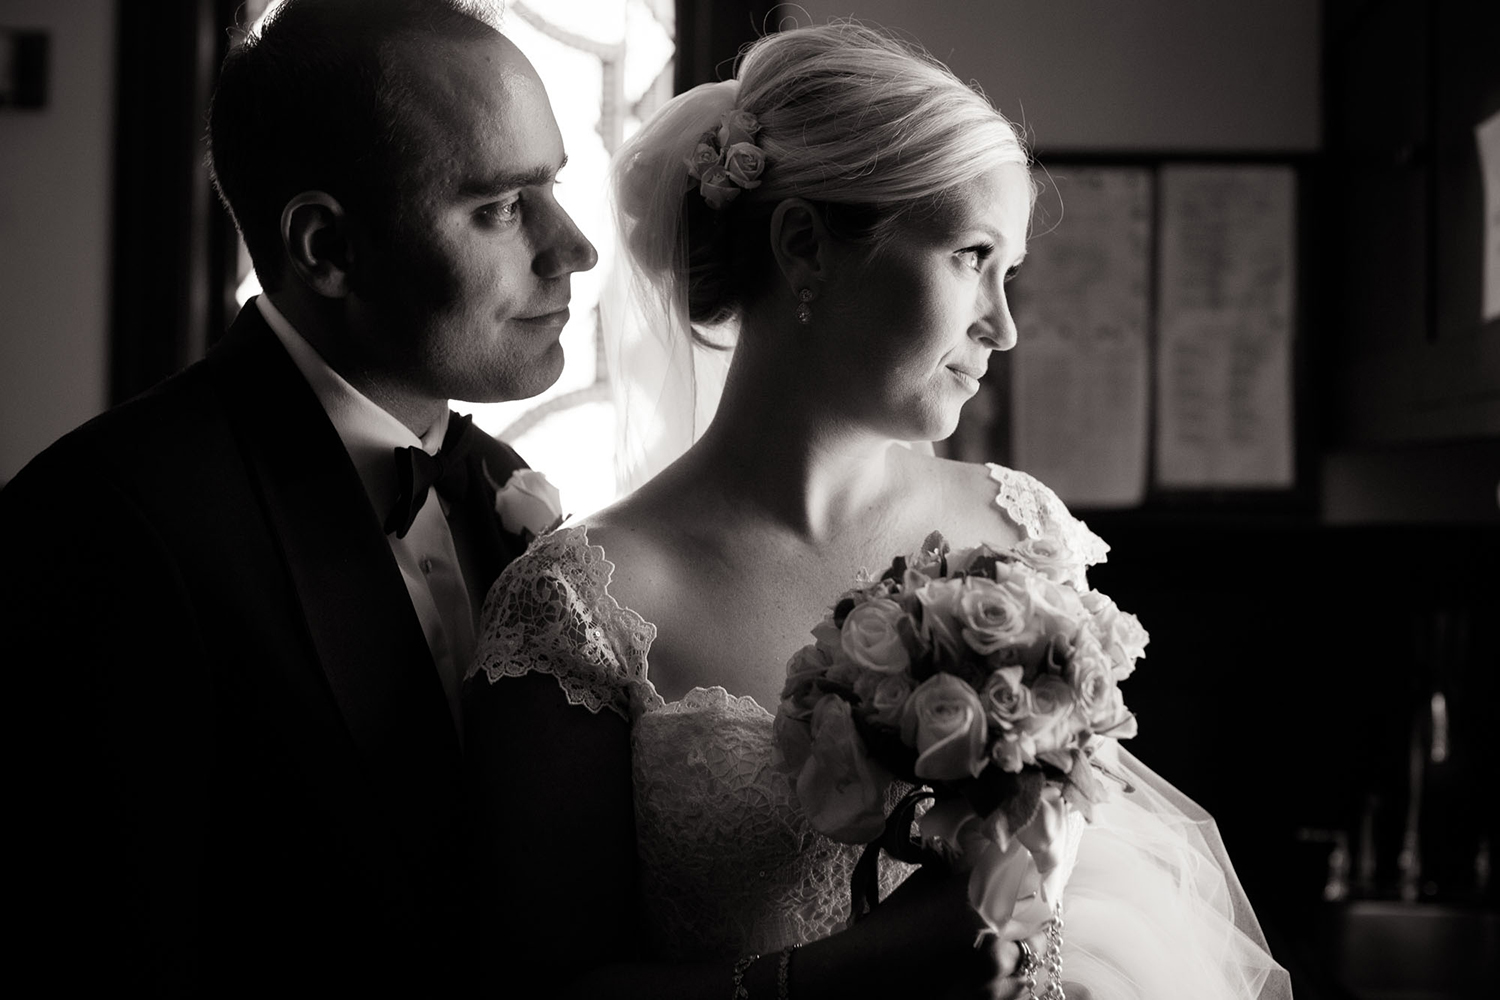 Dena_Rooney_Wedding_Photographer_Chruch_wedding_011.jpg